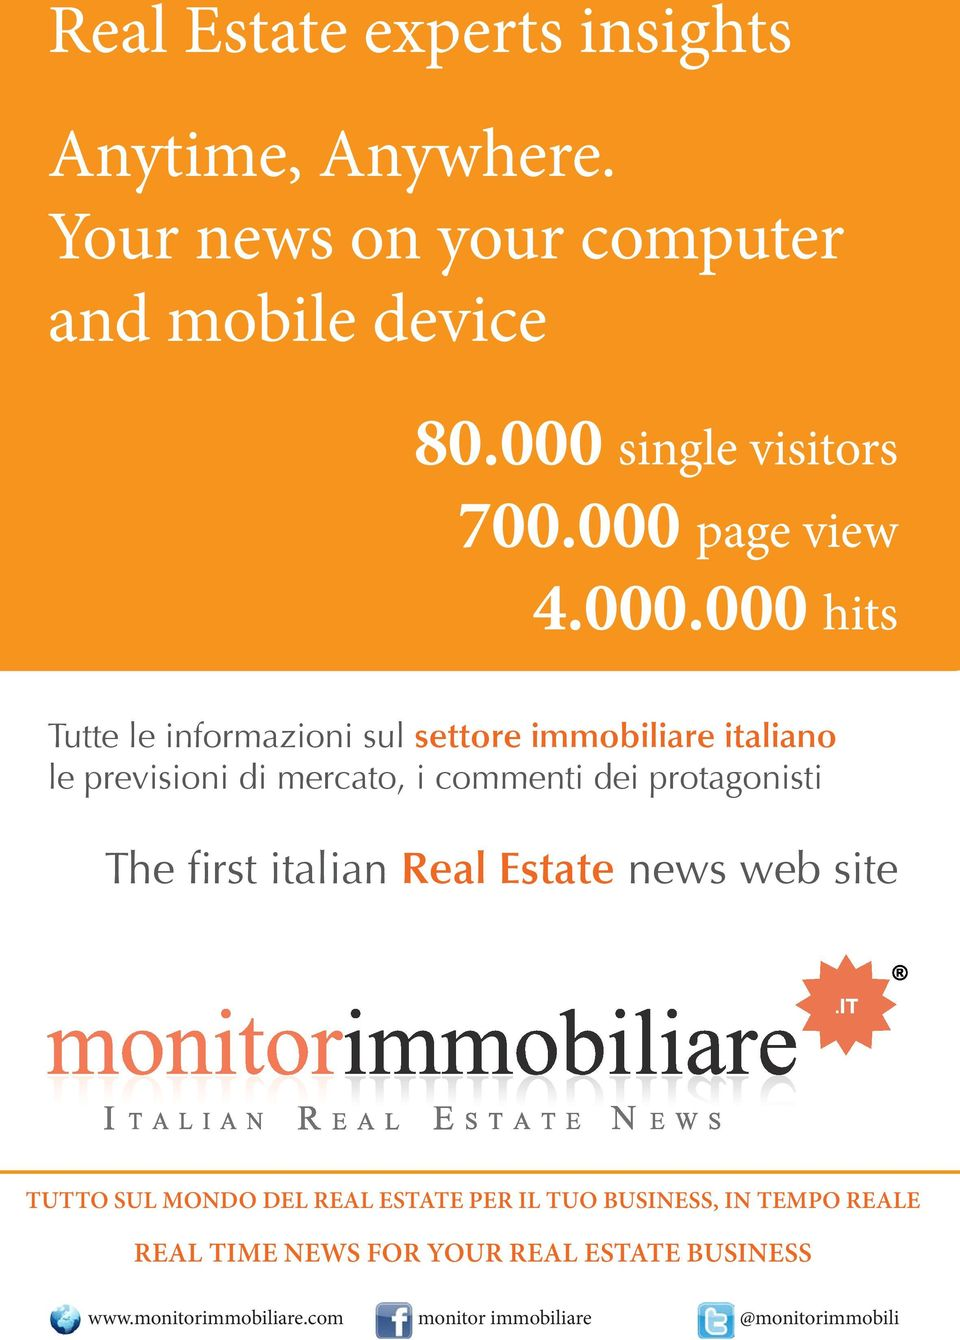 commenti dei protagonisti The first italian news web site TuTTo sul mondo del Real estate PeR il Tuo business, in TemPo